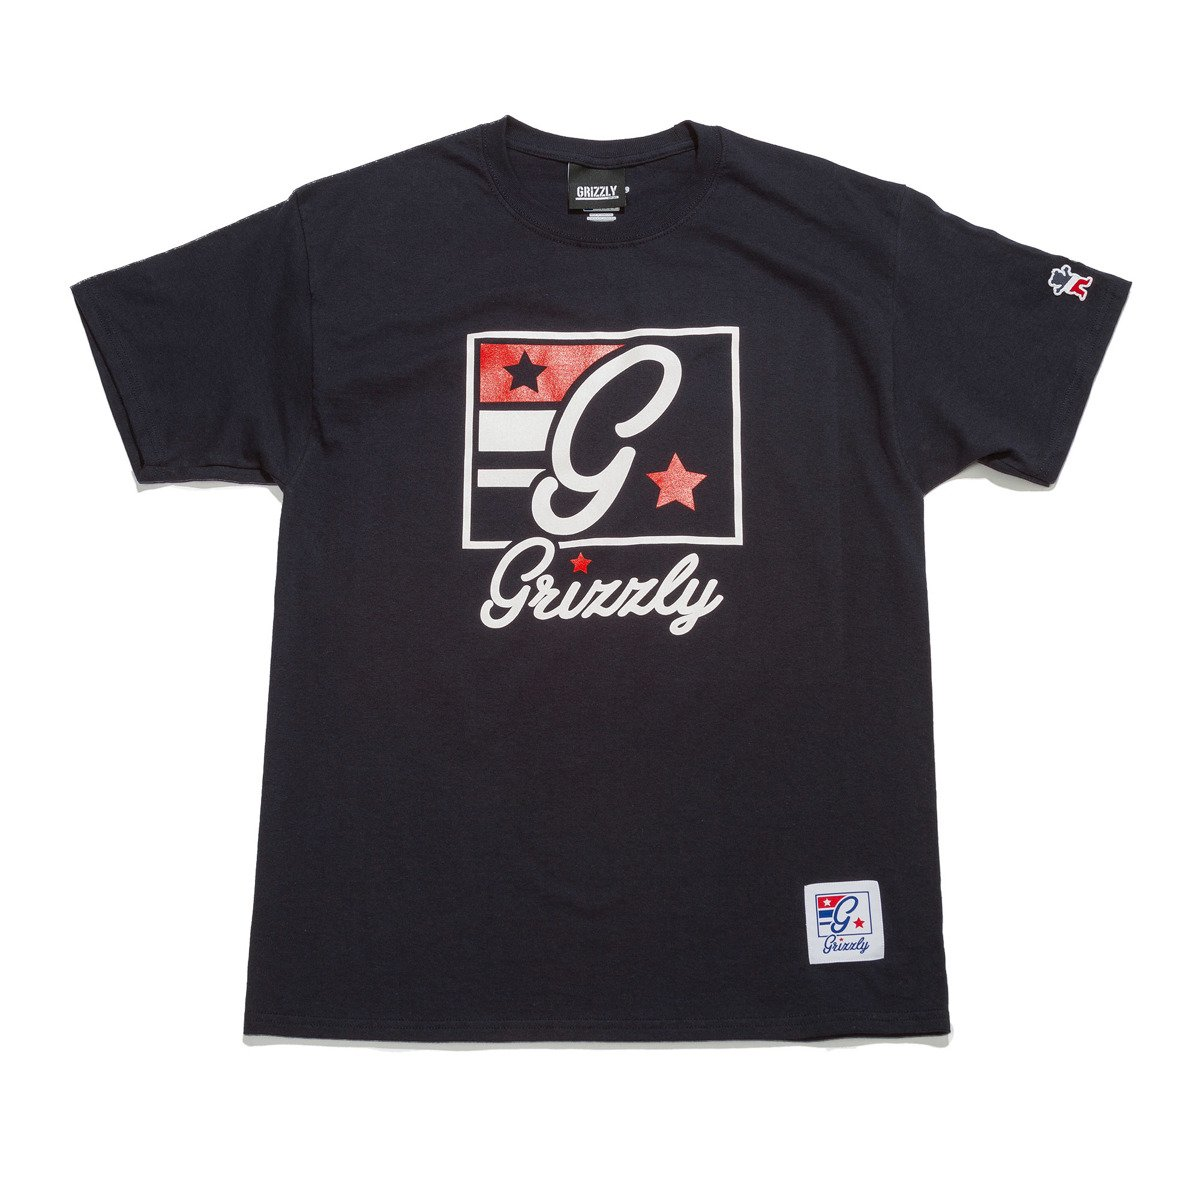 3e6db79d champion x grizzly hardwood classic tee black black | Clothes \ T-shirts \ T -Shirts SALE \ Sale 50% -70% \ T-Shirts Brands \ Champion Odzież \ Champion  ...